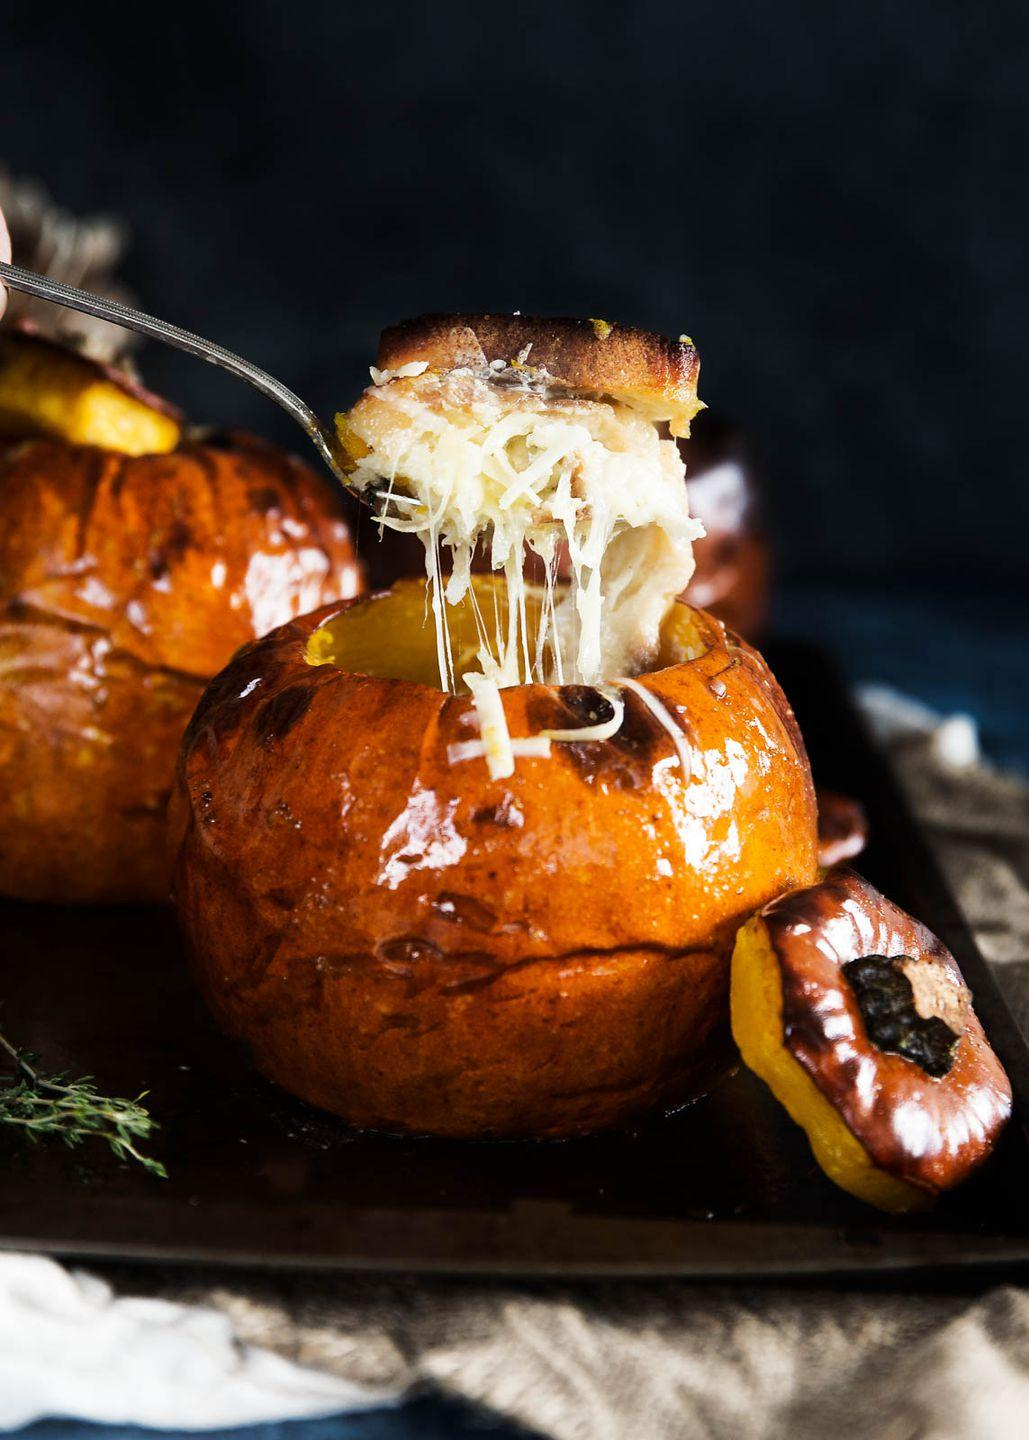 """<p>Cheese pull goals.</p><p>Get the recipe from <a href=""""http://bromabakery.com/2016/11/cheesy-bread-pudding-stuffed-pumpkin.html"""" rel=""""nofollow noopener"""" target=""""_blank"""" data-ylk=""""slk:Broma Bakery"""" class=""""link rapid-noclick-resp"""">Broma Bakery</a>.</p>"""